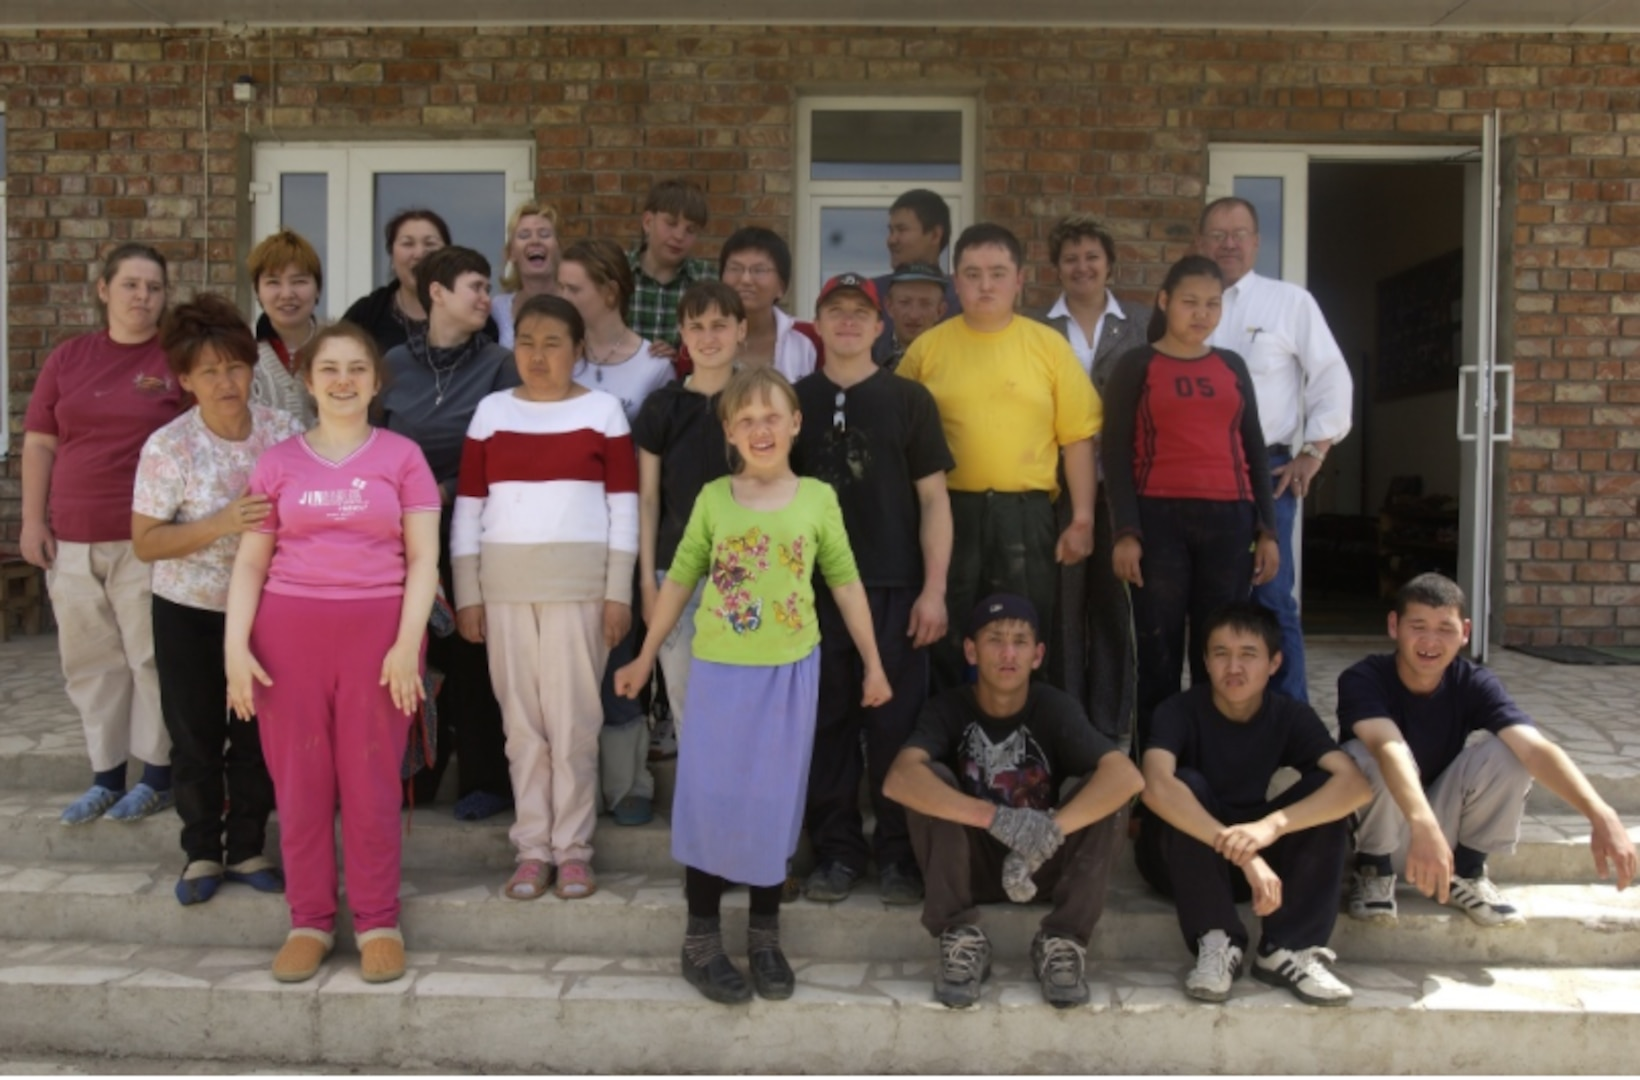 Students and staff line up for a picture in front of the Uventus Center outside of Bishkek, Kyrgyzstan. The school teaches work skills to special needs children.